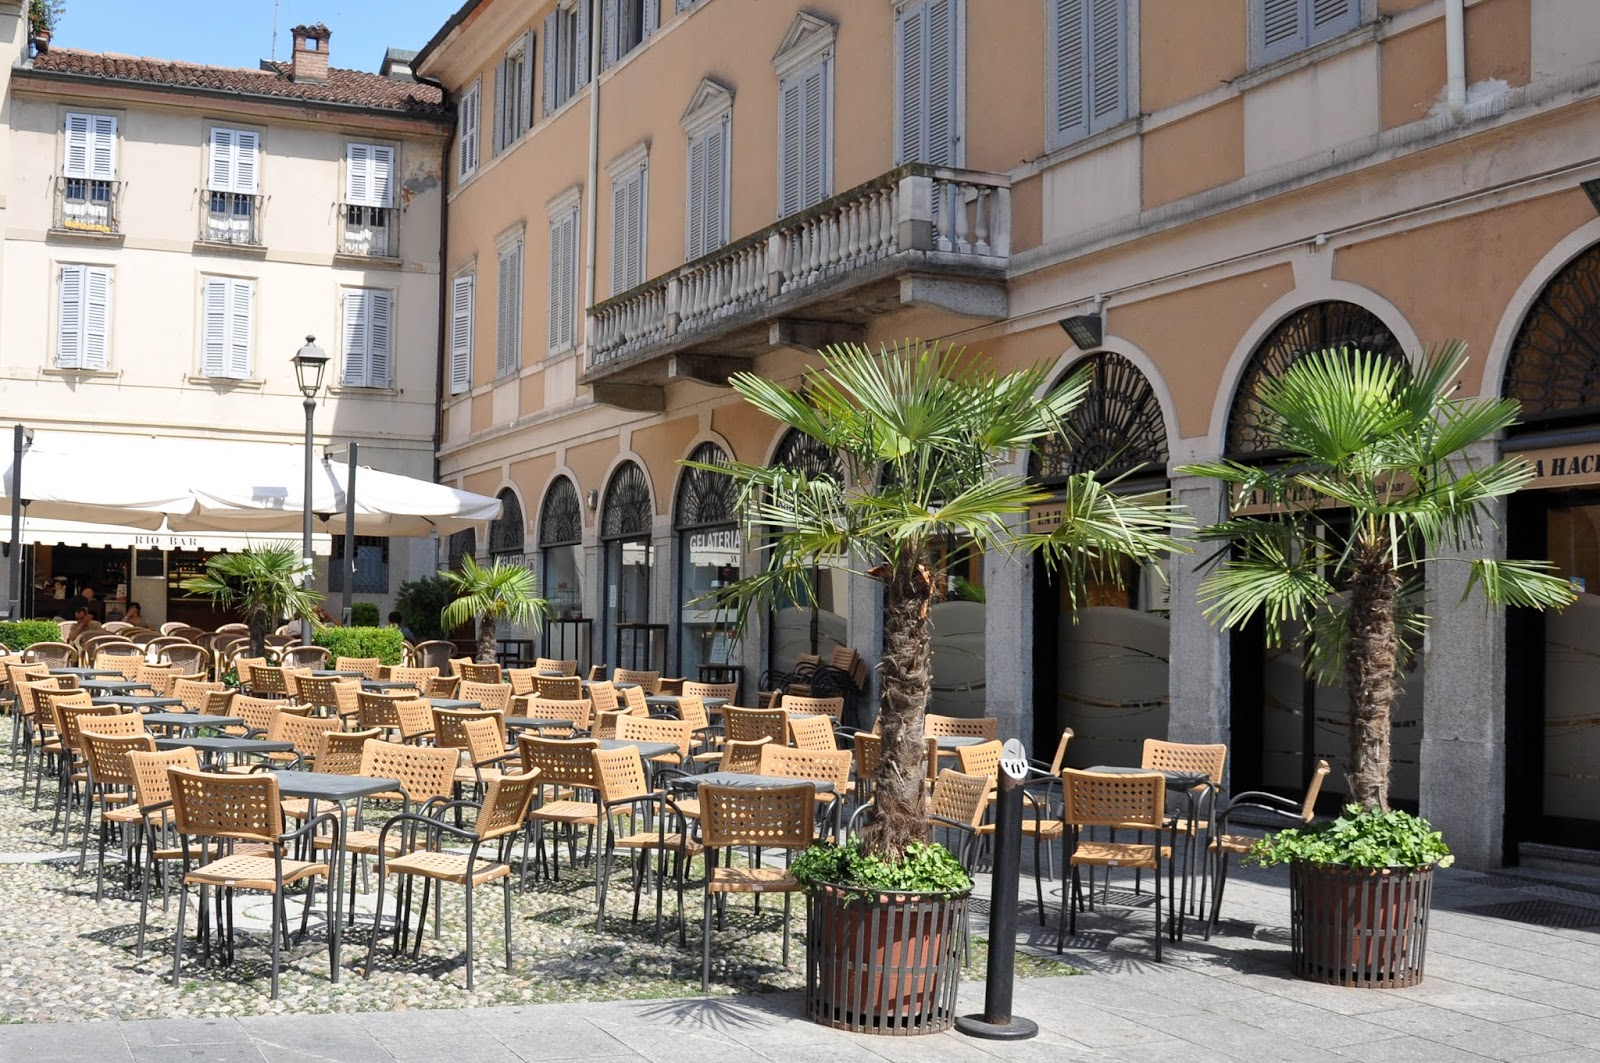 A deserted cafe, Cremona, Italy